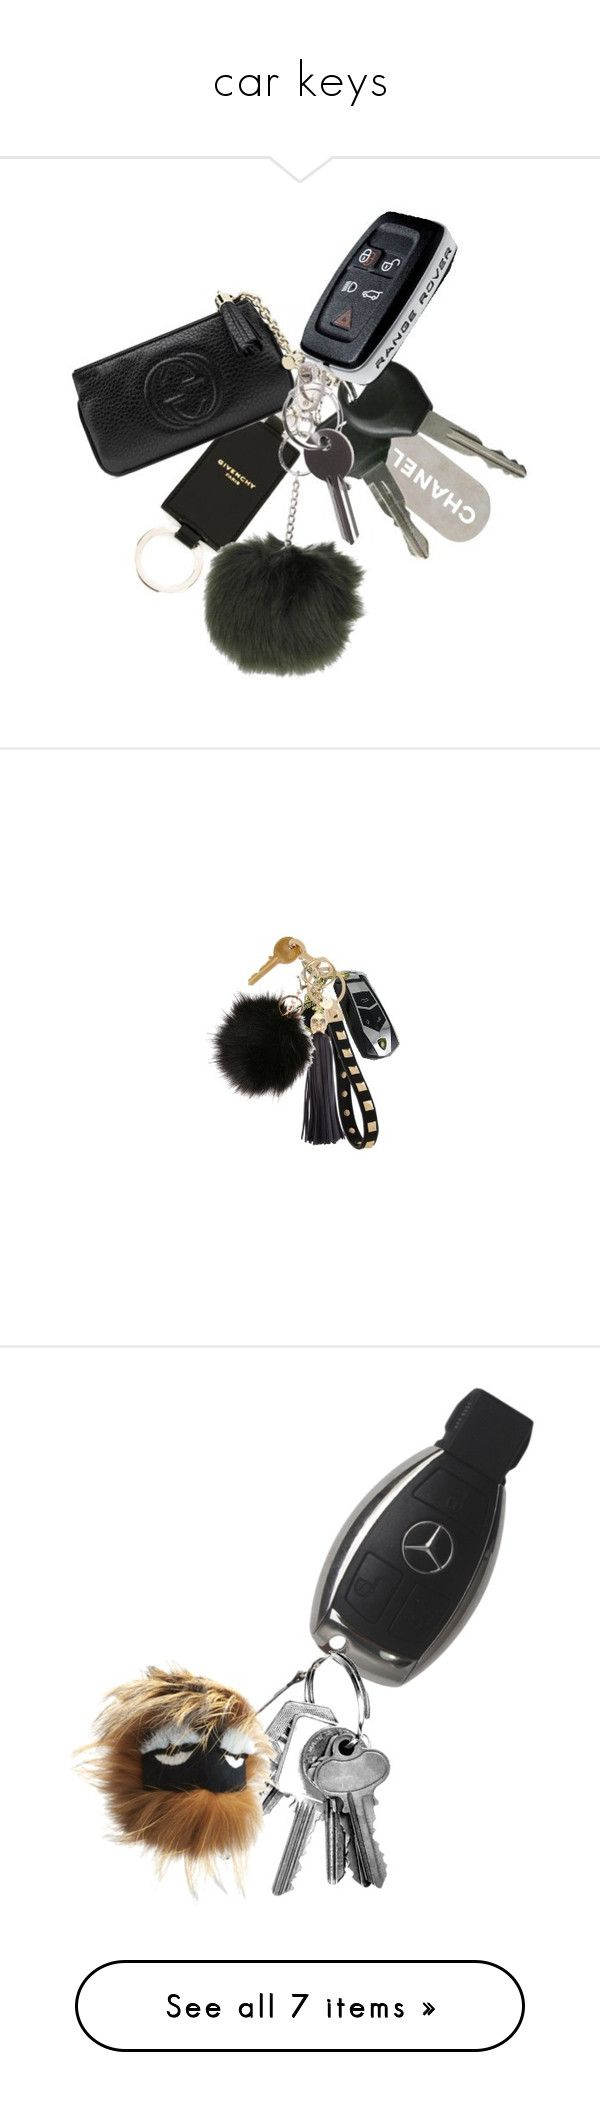 """car keys"" by geazybxtch24 ❤ liked on Polyvore featuring fillers, accessories, cars, random, filler, keys, things, misc, car key and everyday items"